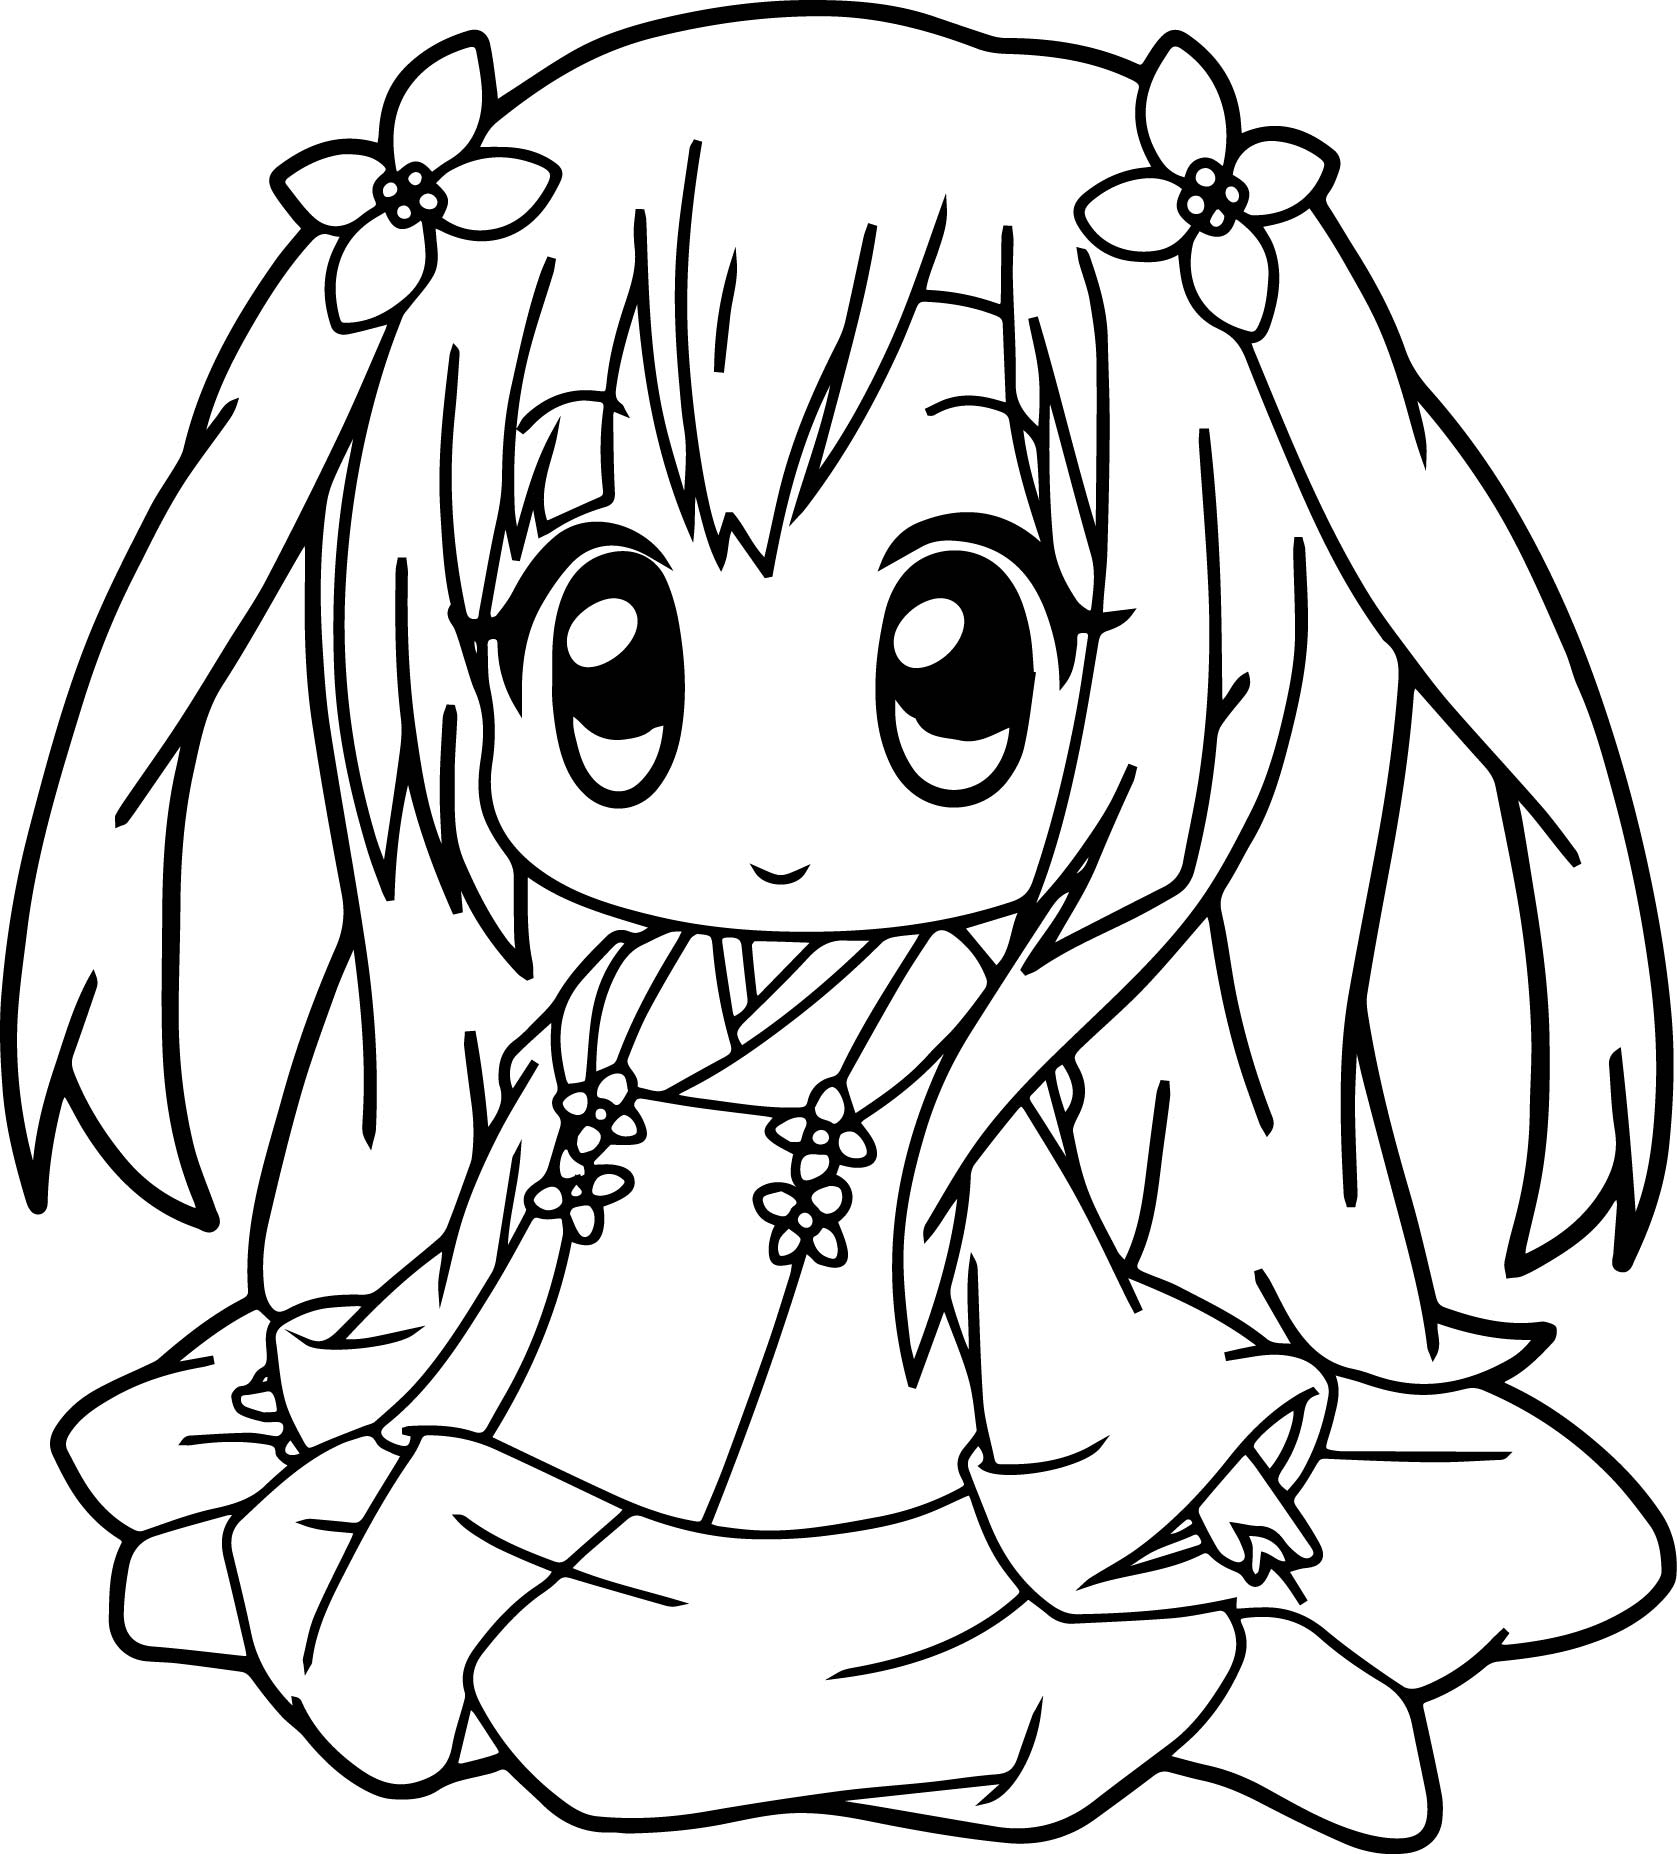 Very cute anime girl coloring page for Online anime coloring pages